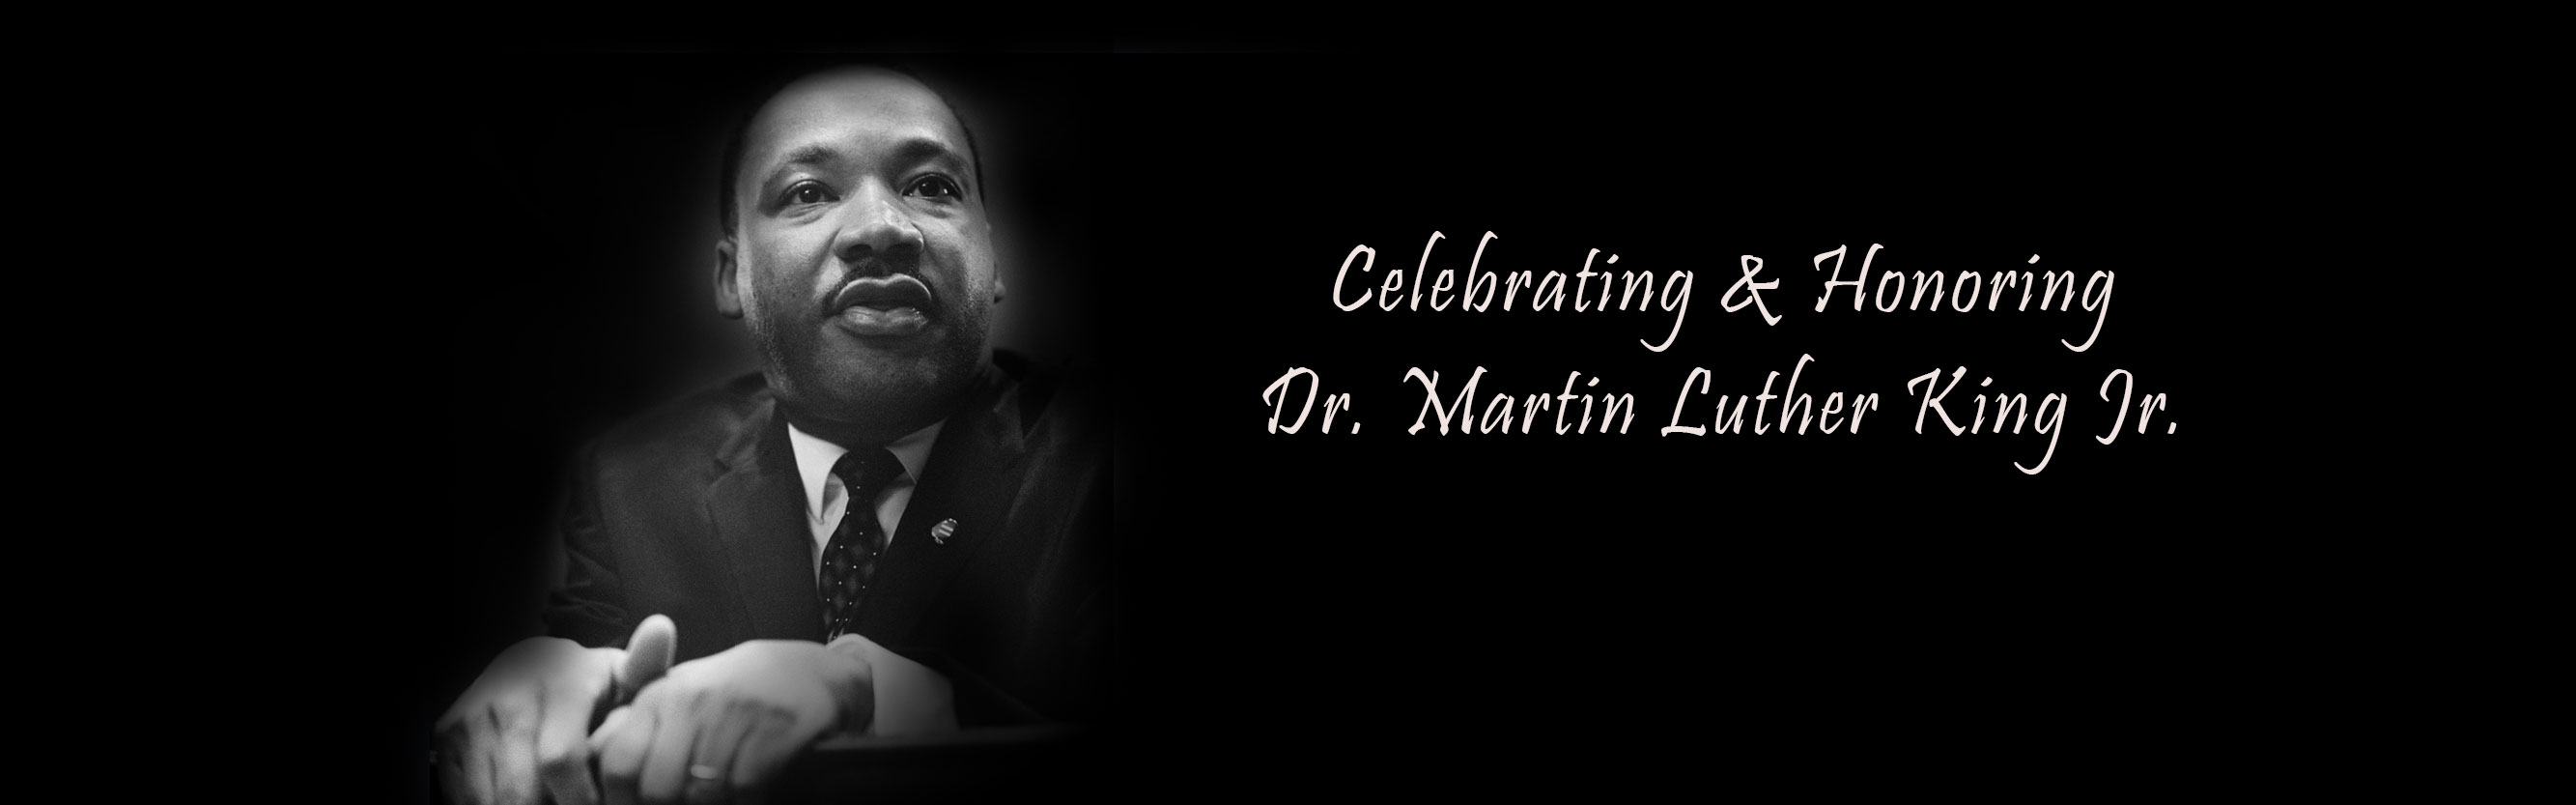 Happy Dr. Martin Luther King Jr. Day